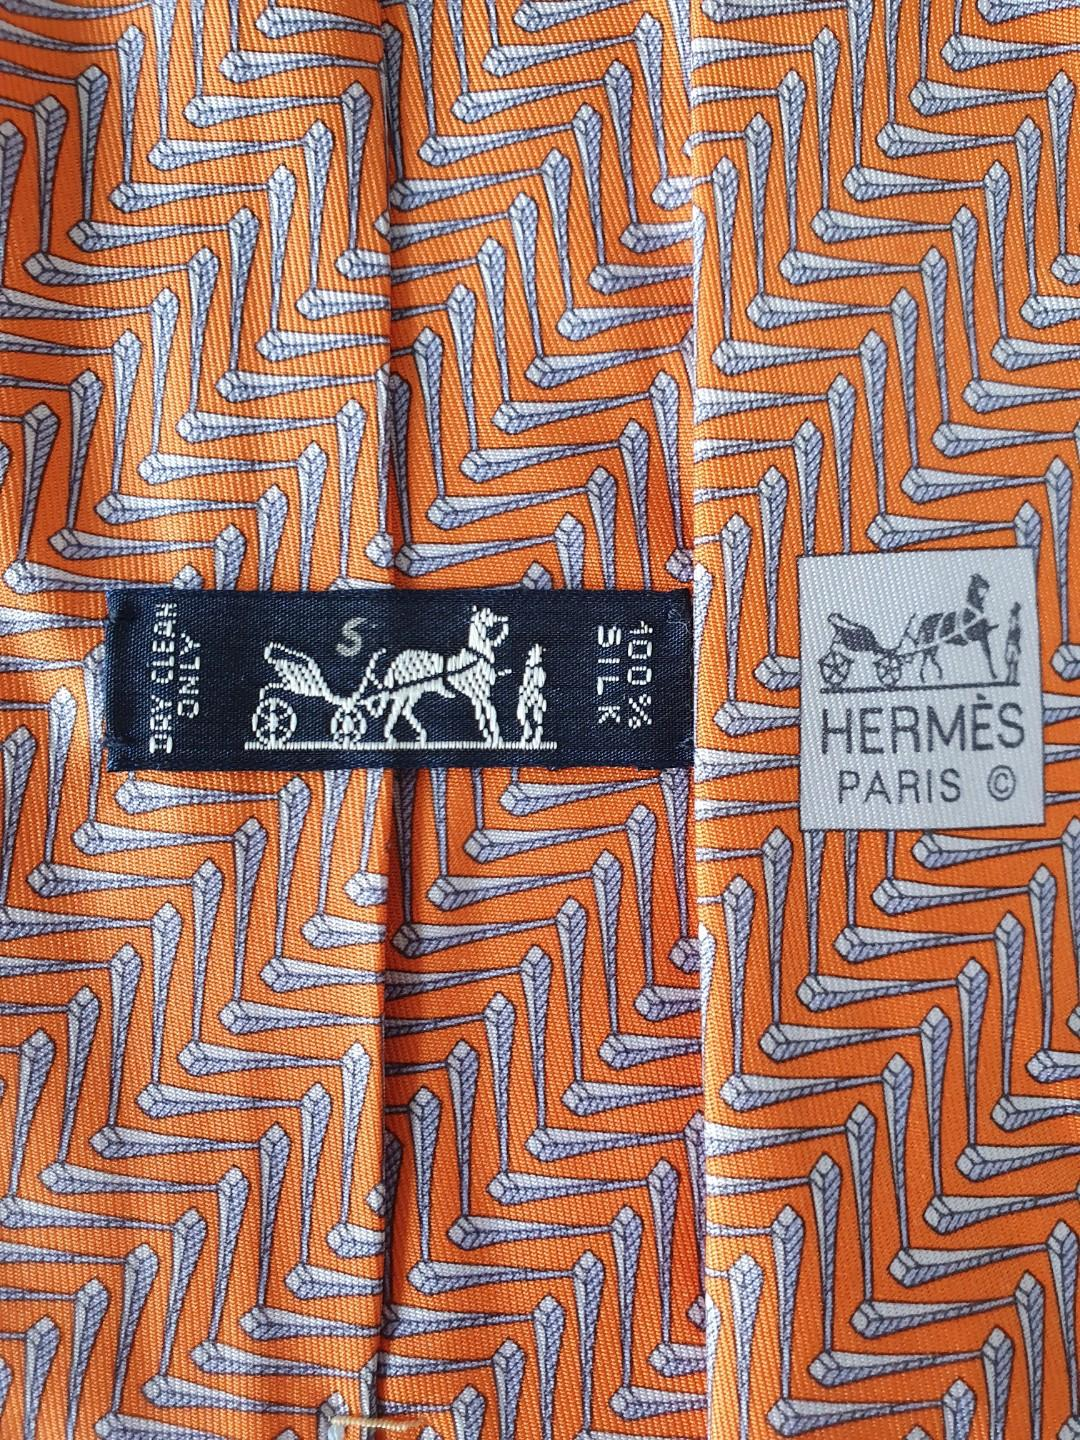 Two Authentic Hermes Tie for $88